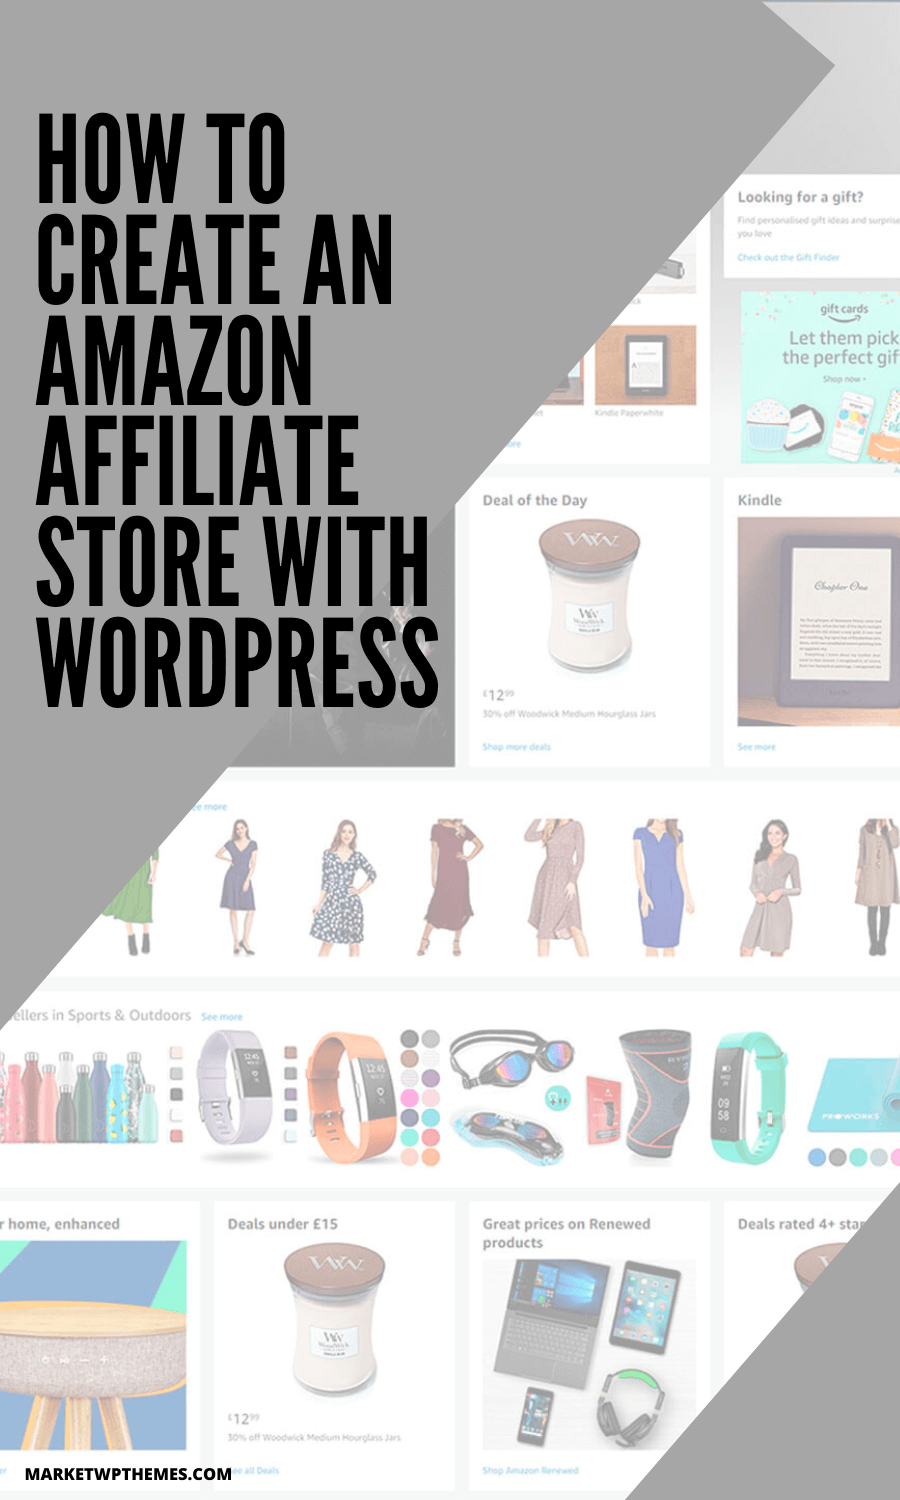 How to Create an Amazon Affiliate Store With WordPress